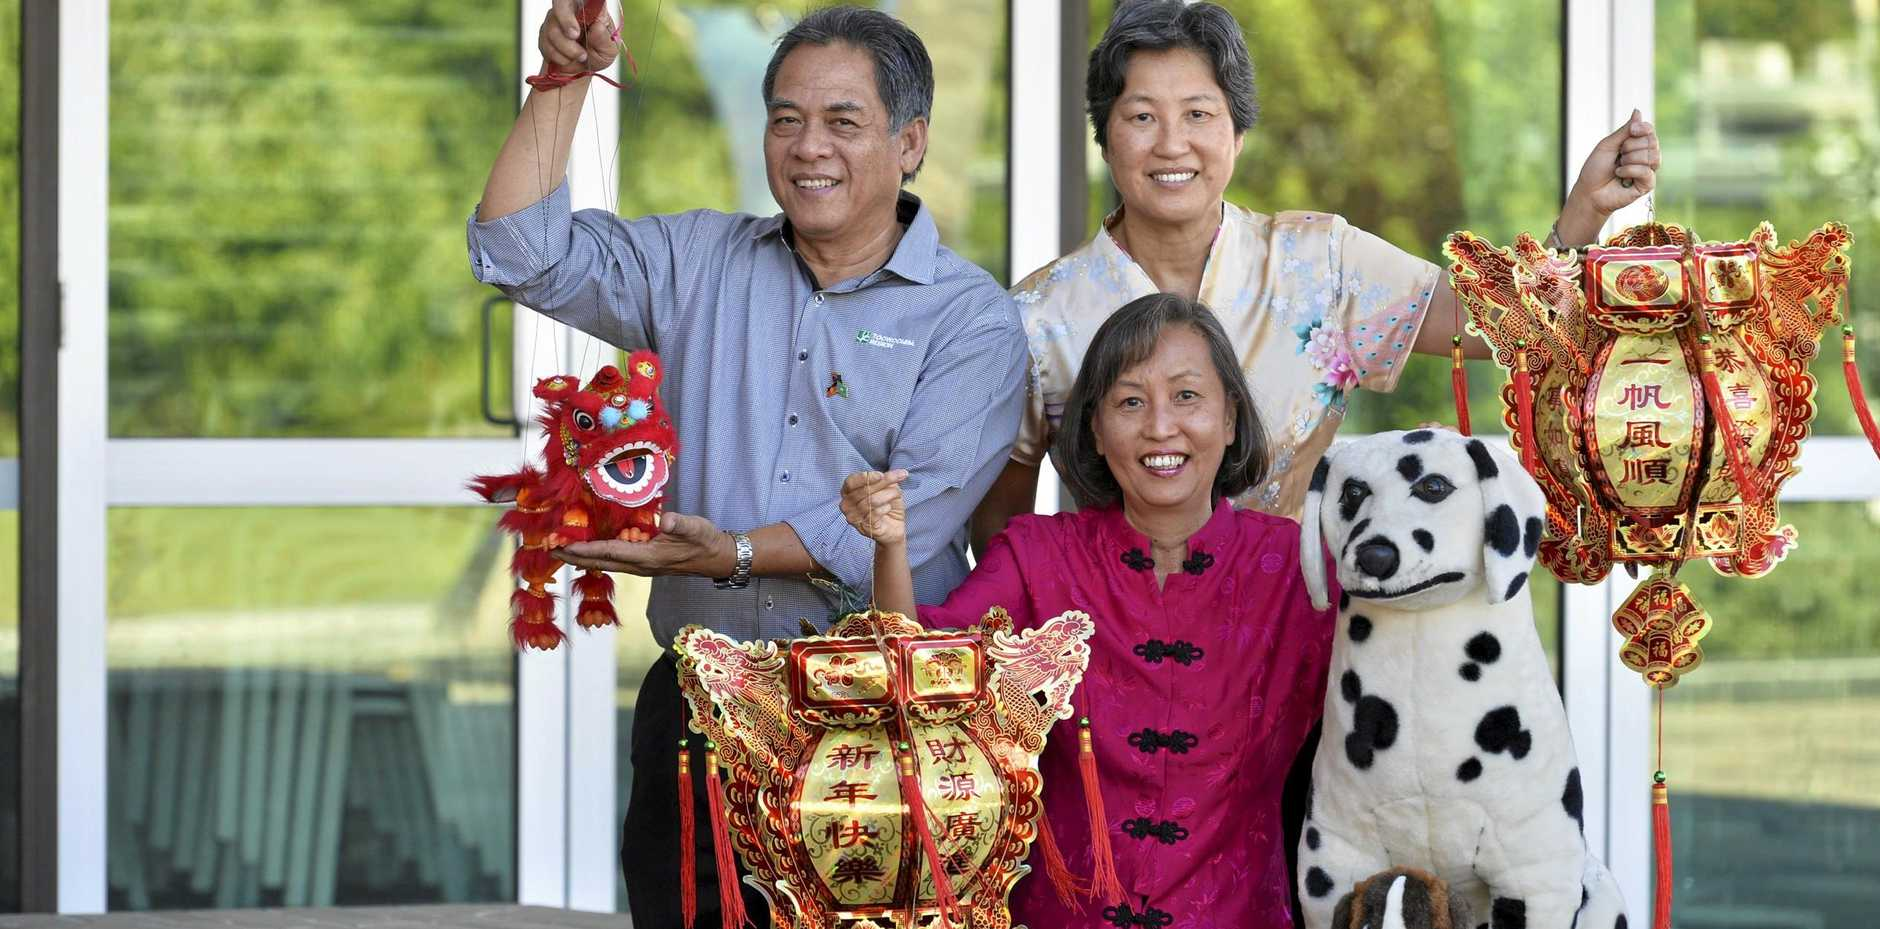 CELEBRATION TIME: Preparing for Chinese New Year celebrations are (from left) Roberto Garcia, Daphne Fung and Nancy Fung.